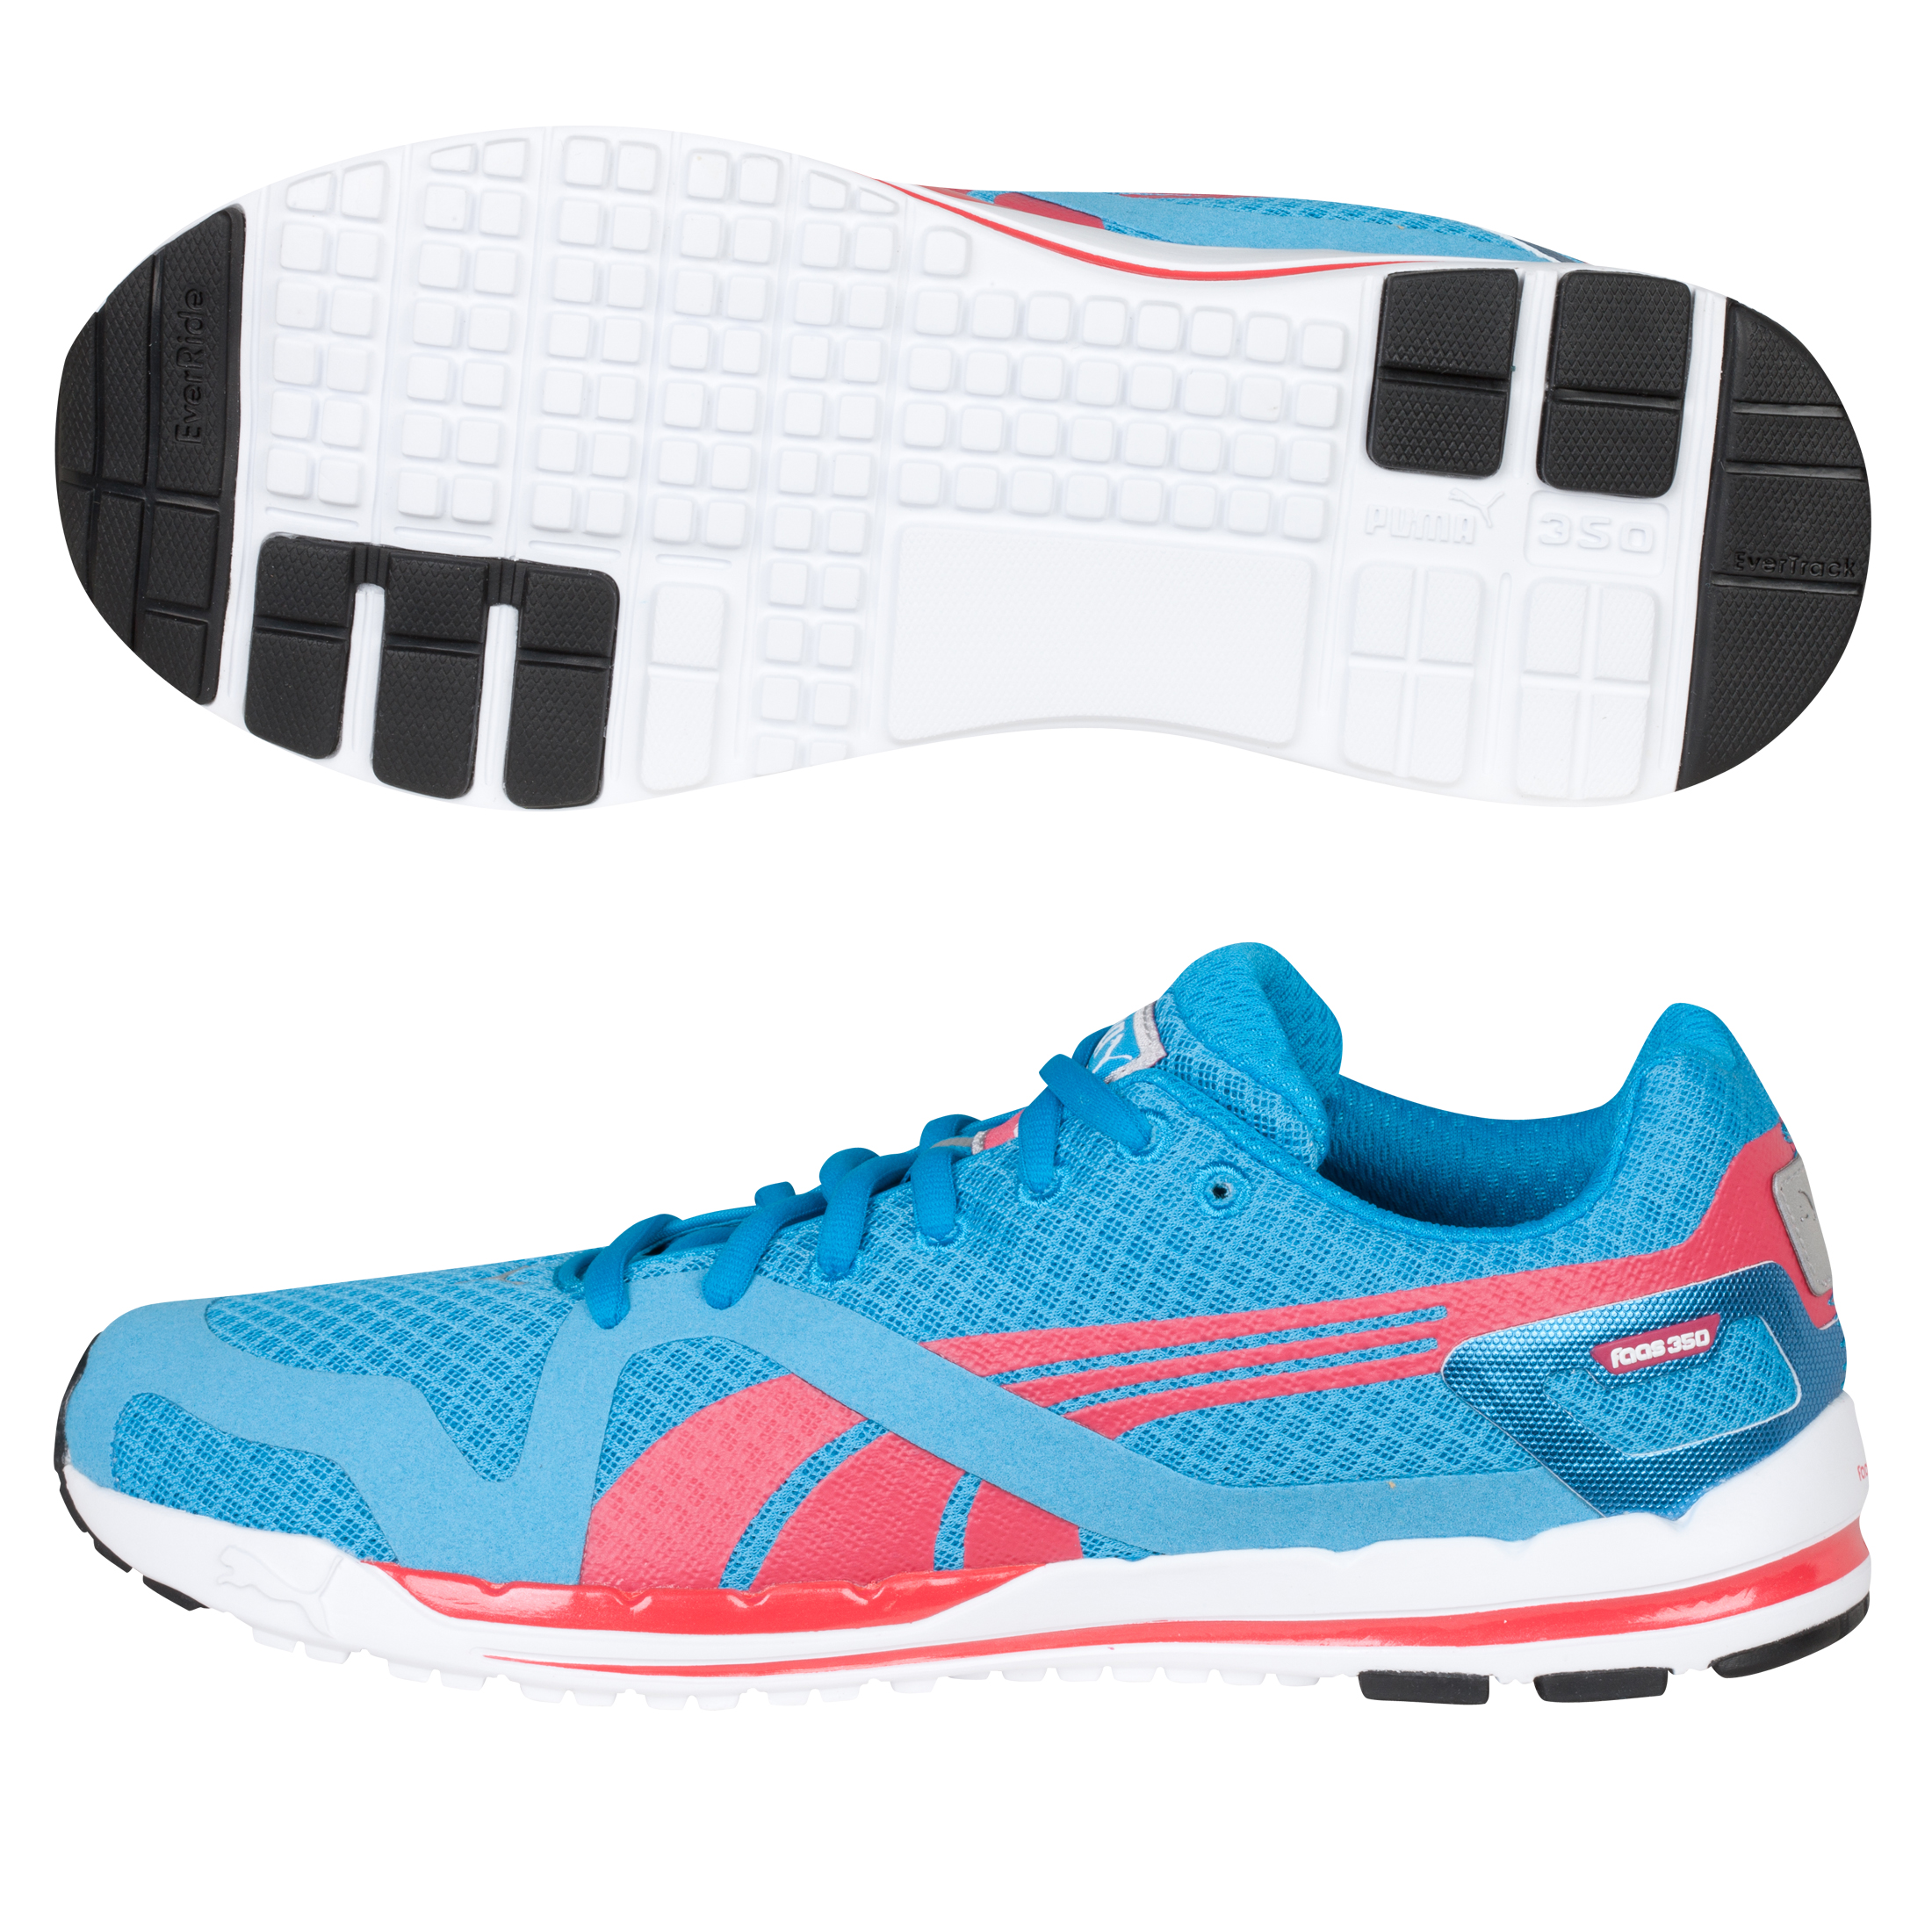 Puma 350 Stability Racer Running Trainers - Vivid Blue/White/Teaberry Red - Womens